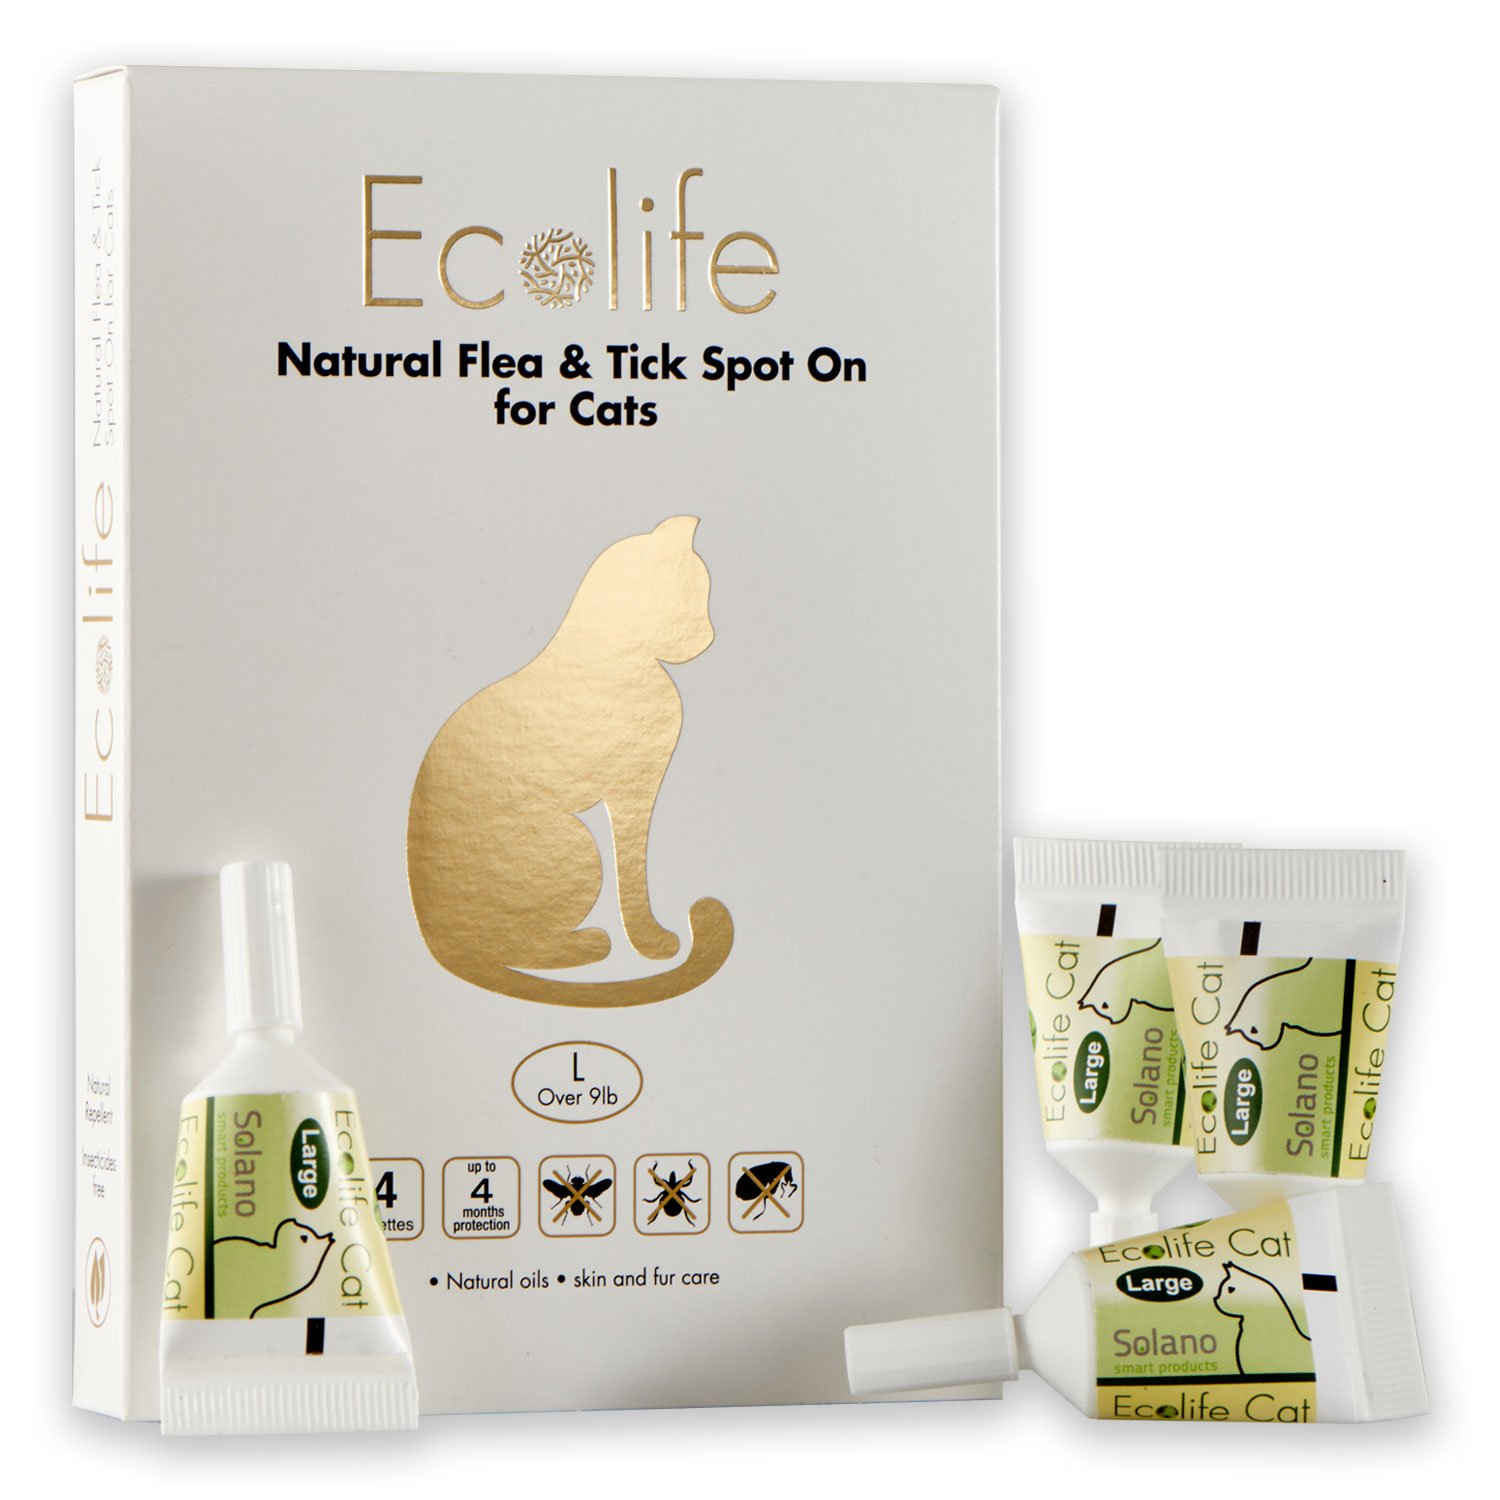 Ecolife Spot On Flea and Tick Repellent for Cats and Kittens (Large)